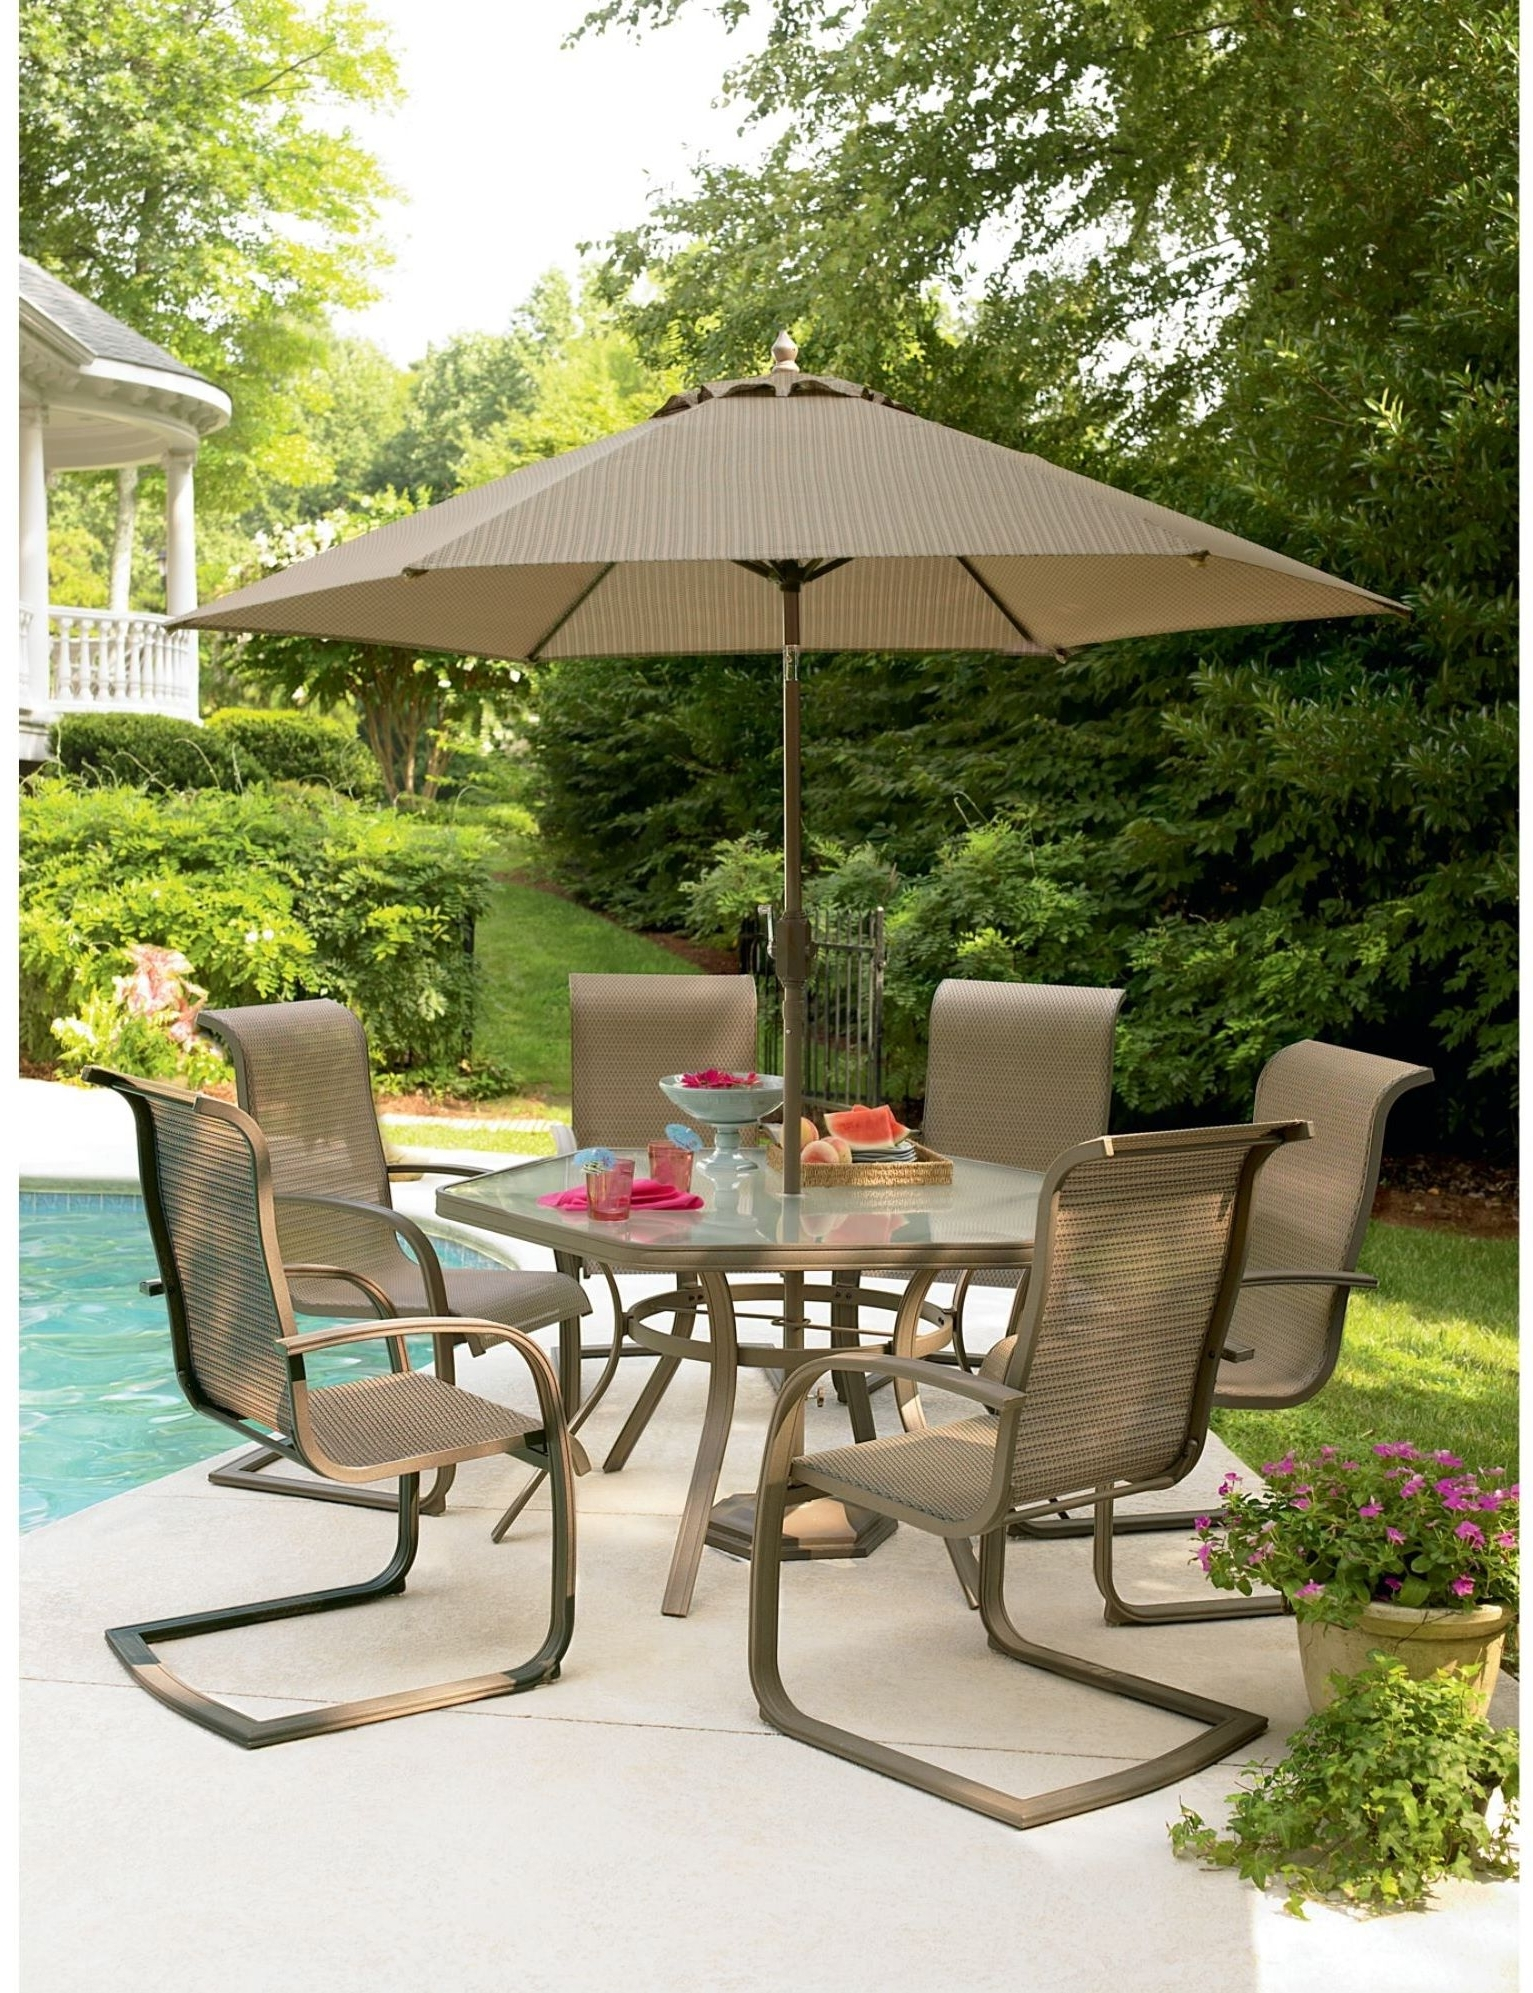 Most Popular Sears Patio Umbrellas Intended For Sears Outdoor Patio Furniture – Cool Modern Furniture Check More At (View 4 of 20)